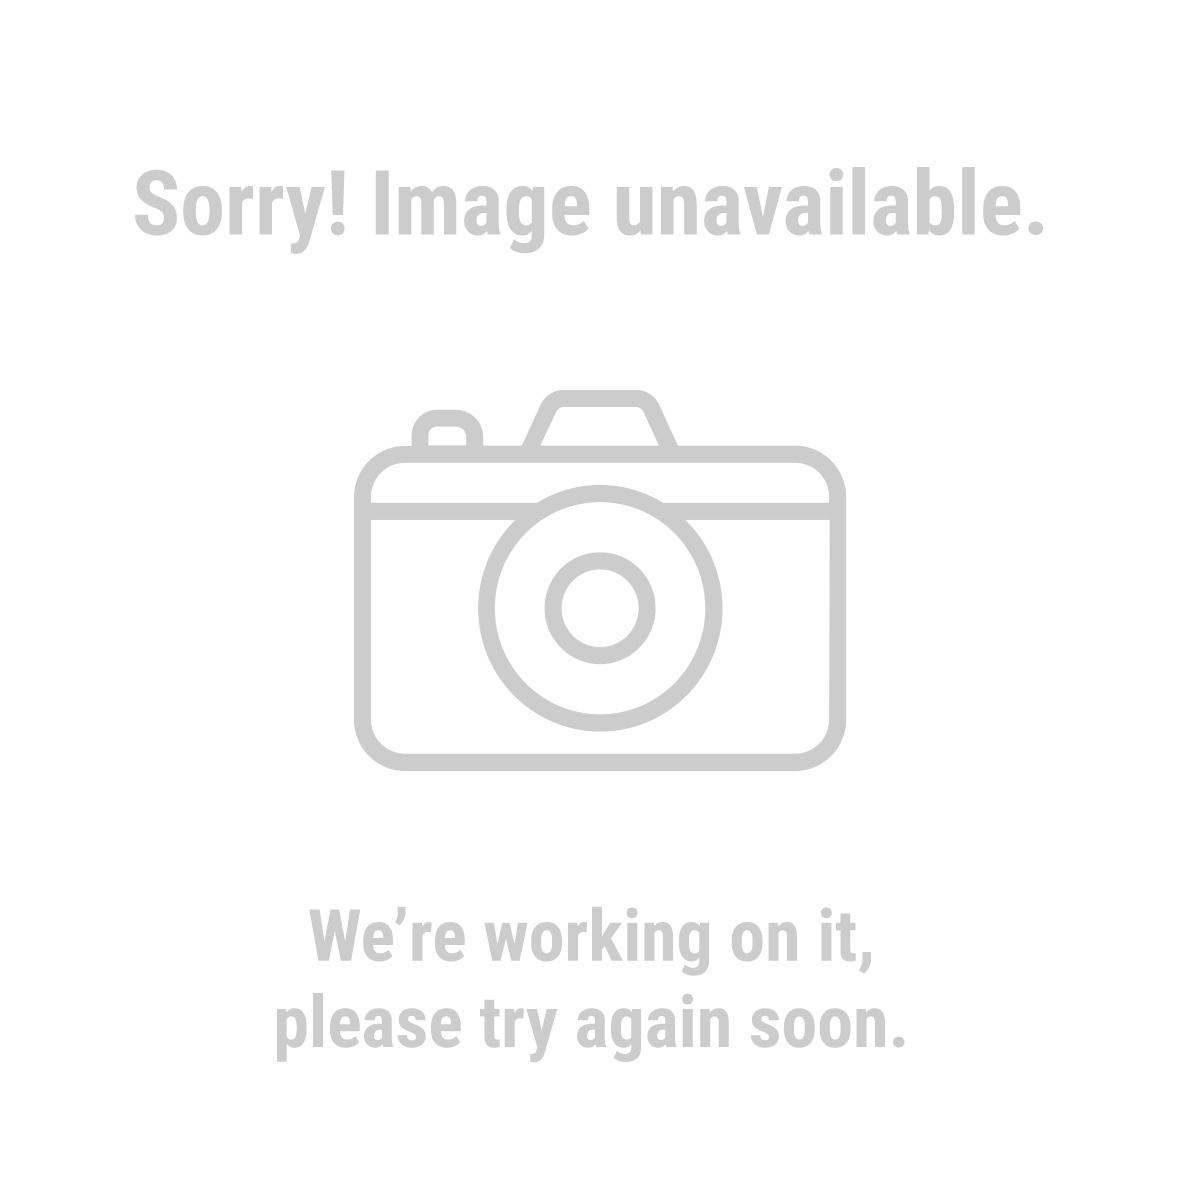 Predator Generators 61169 2500 Watts Peak/2200 Running Watts, 4.7 HP  (125cc) Portable Inverter Generator